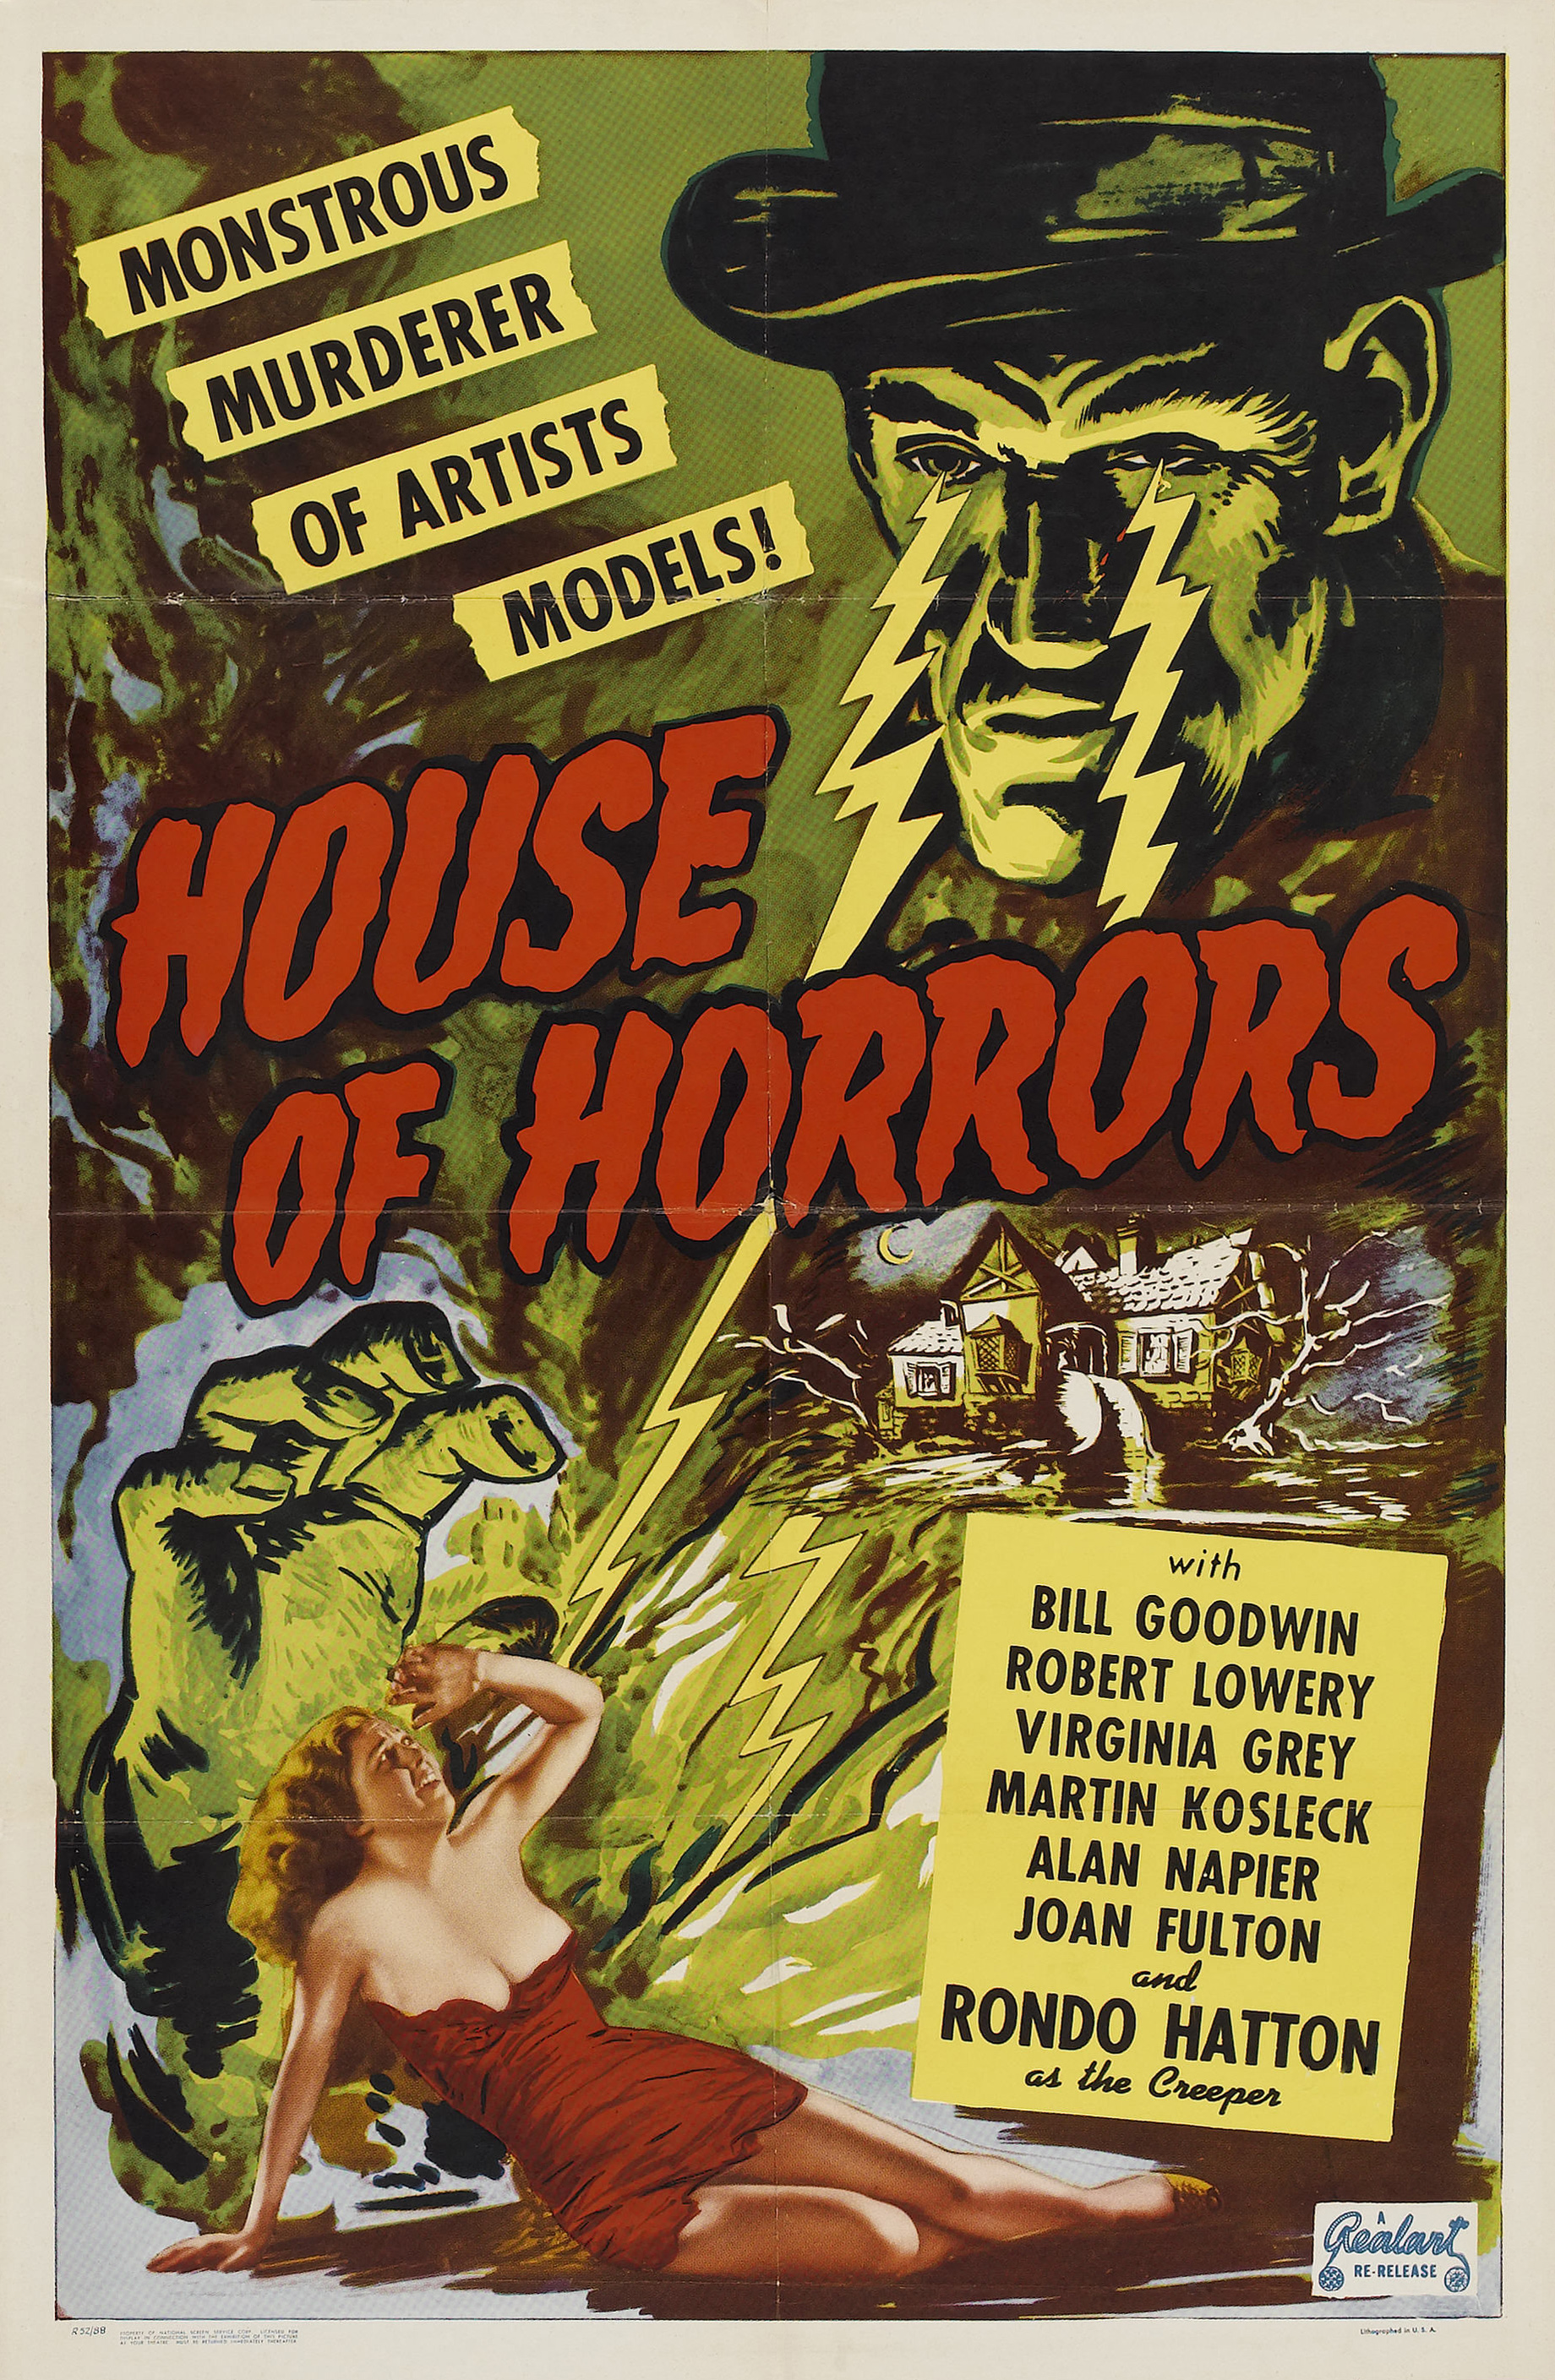 Rondo Hatton in House of Horrors (1946)